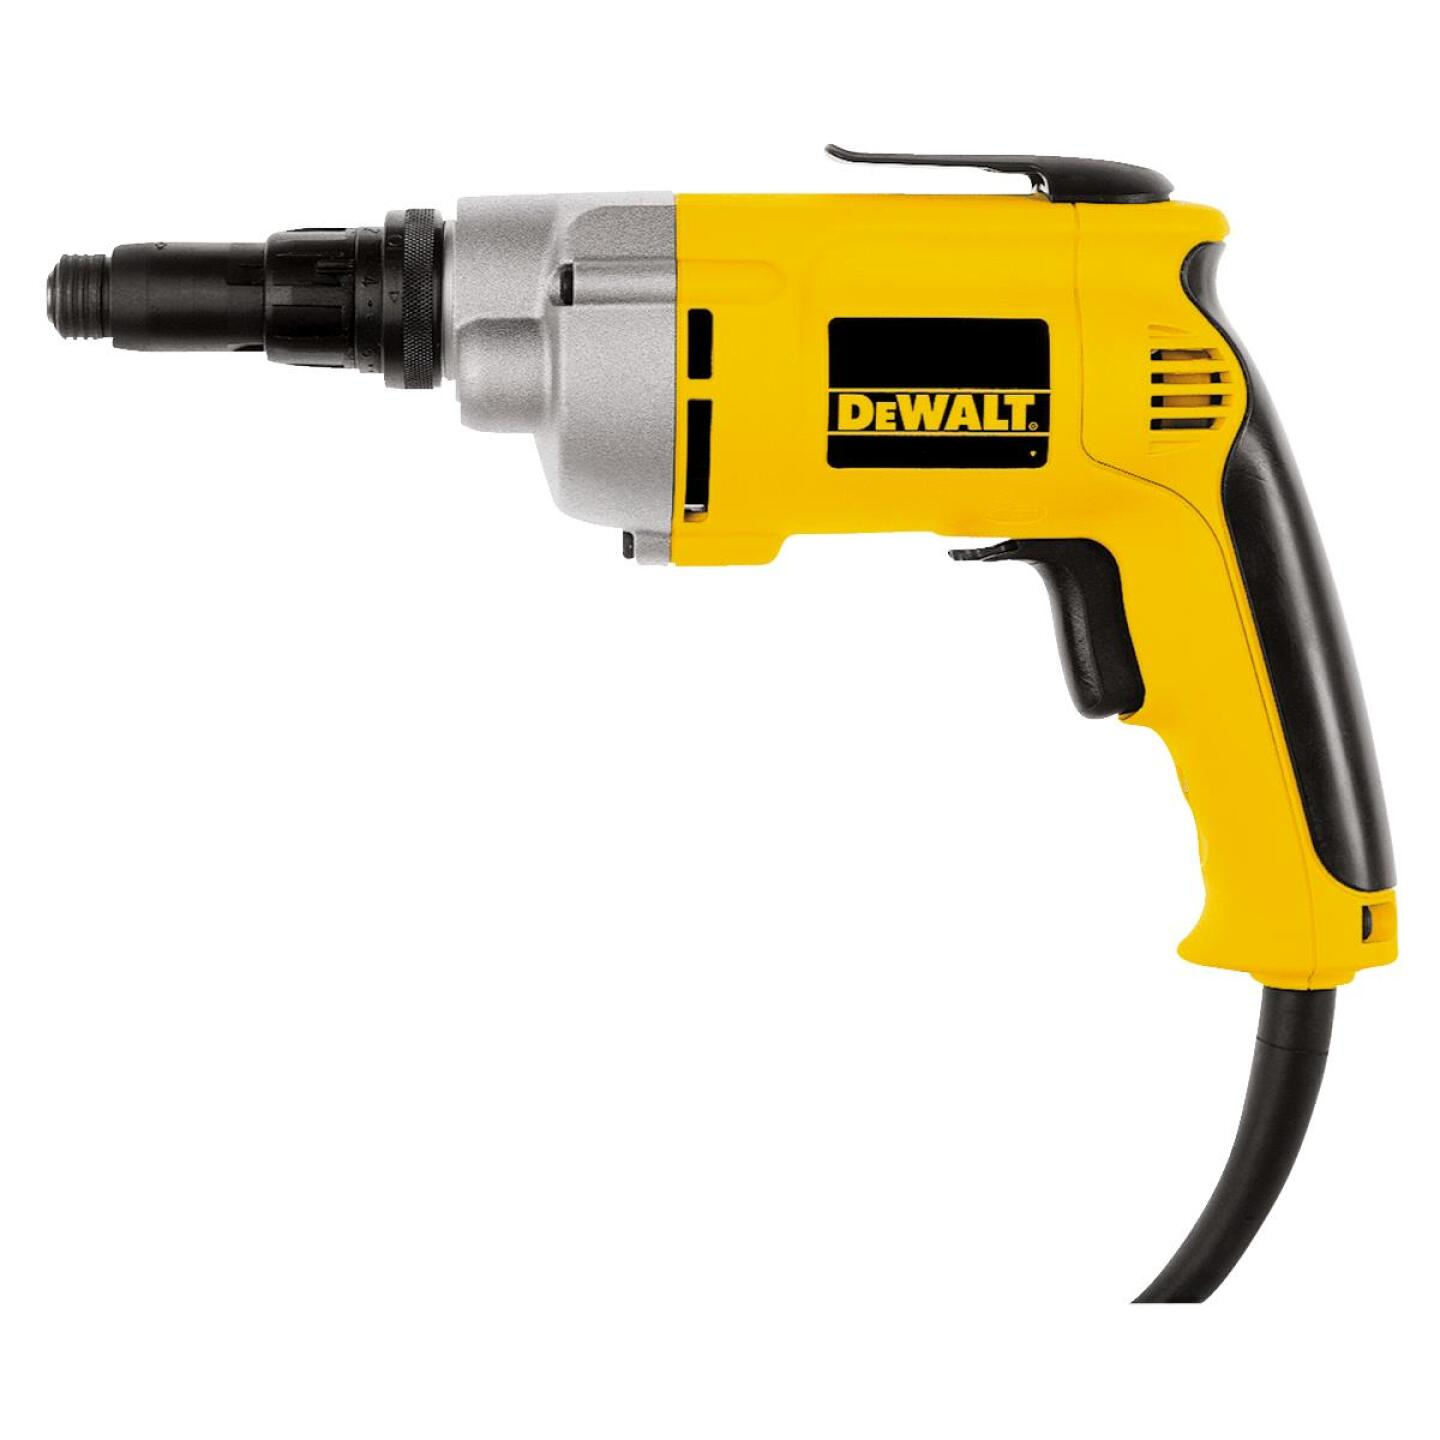 DeWalt 6.5A/2500 rpm 132 In./Lb. Torque Electric Screwgun Image 1